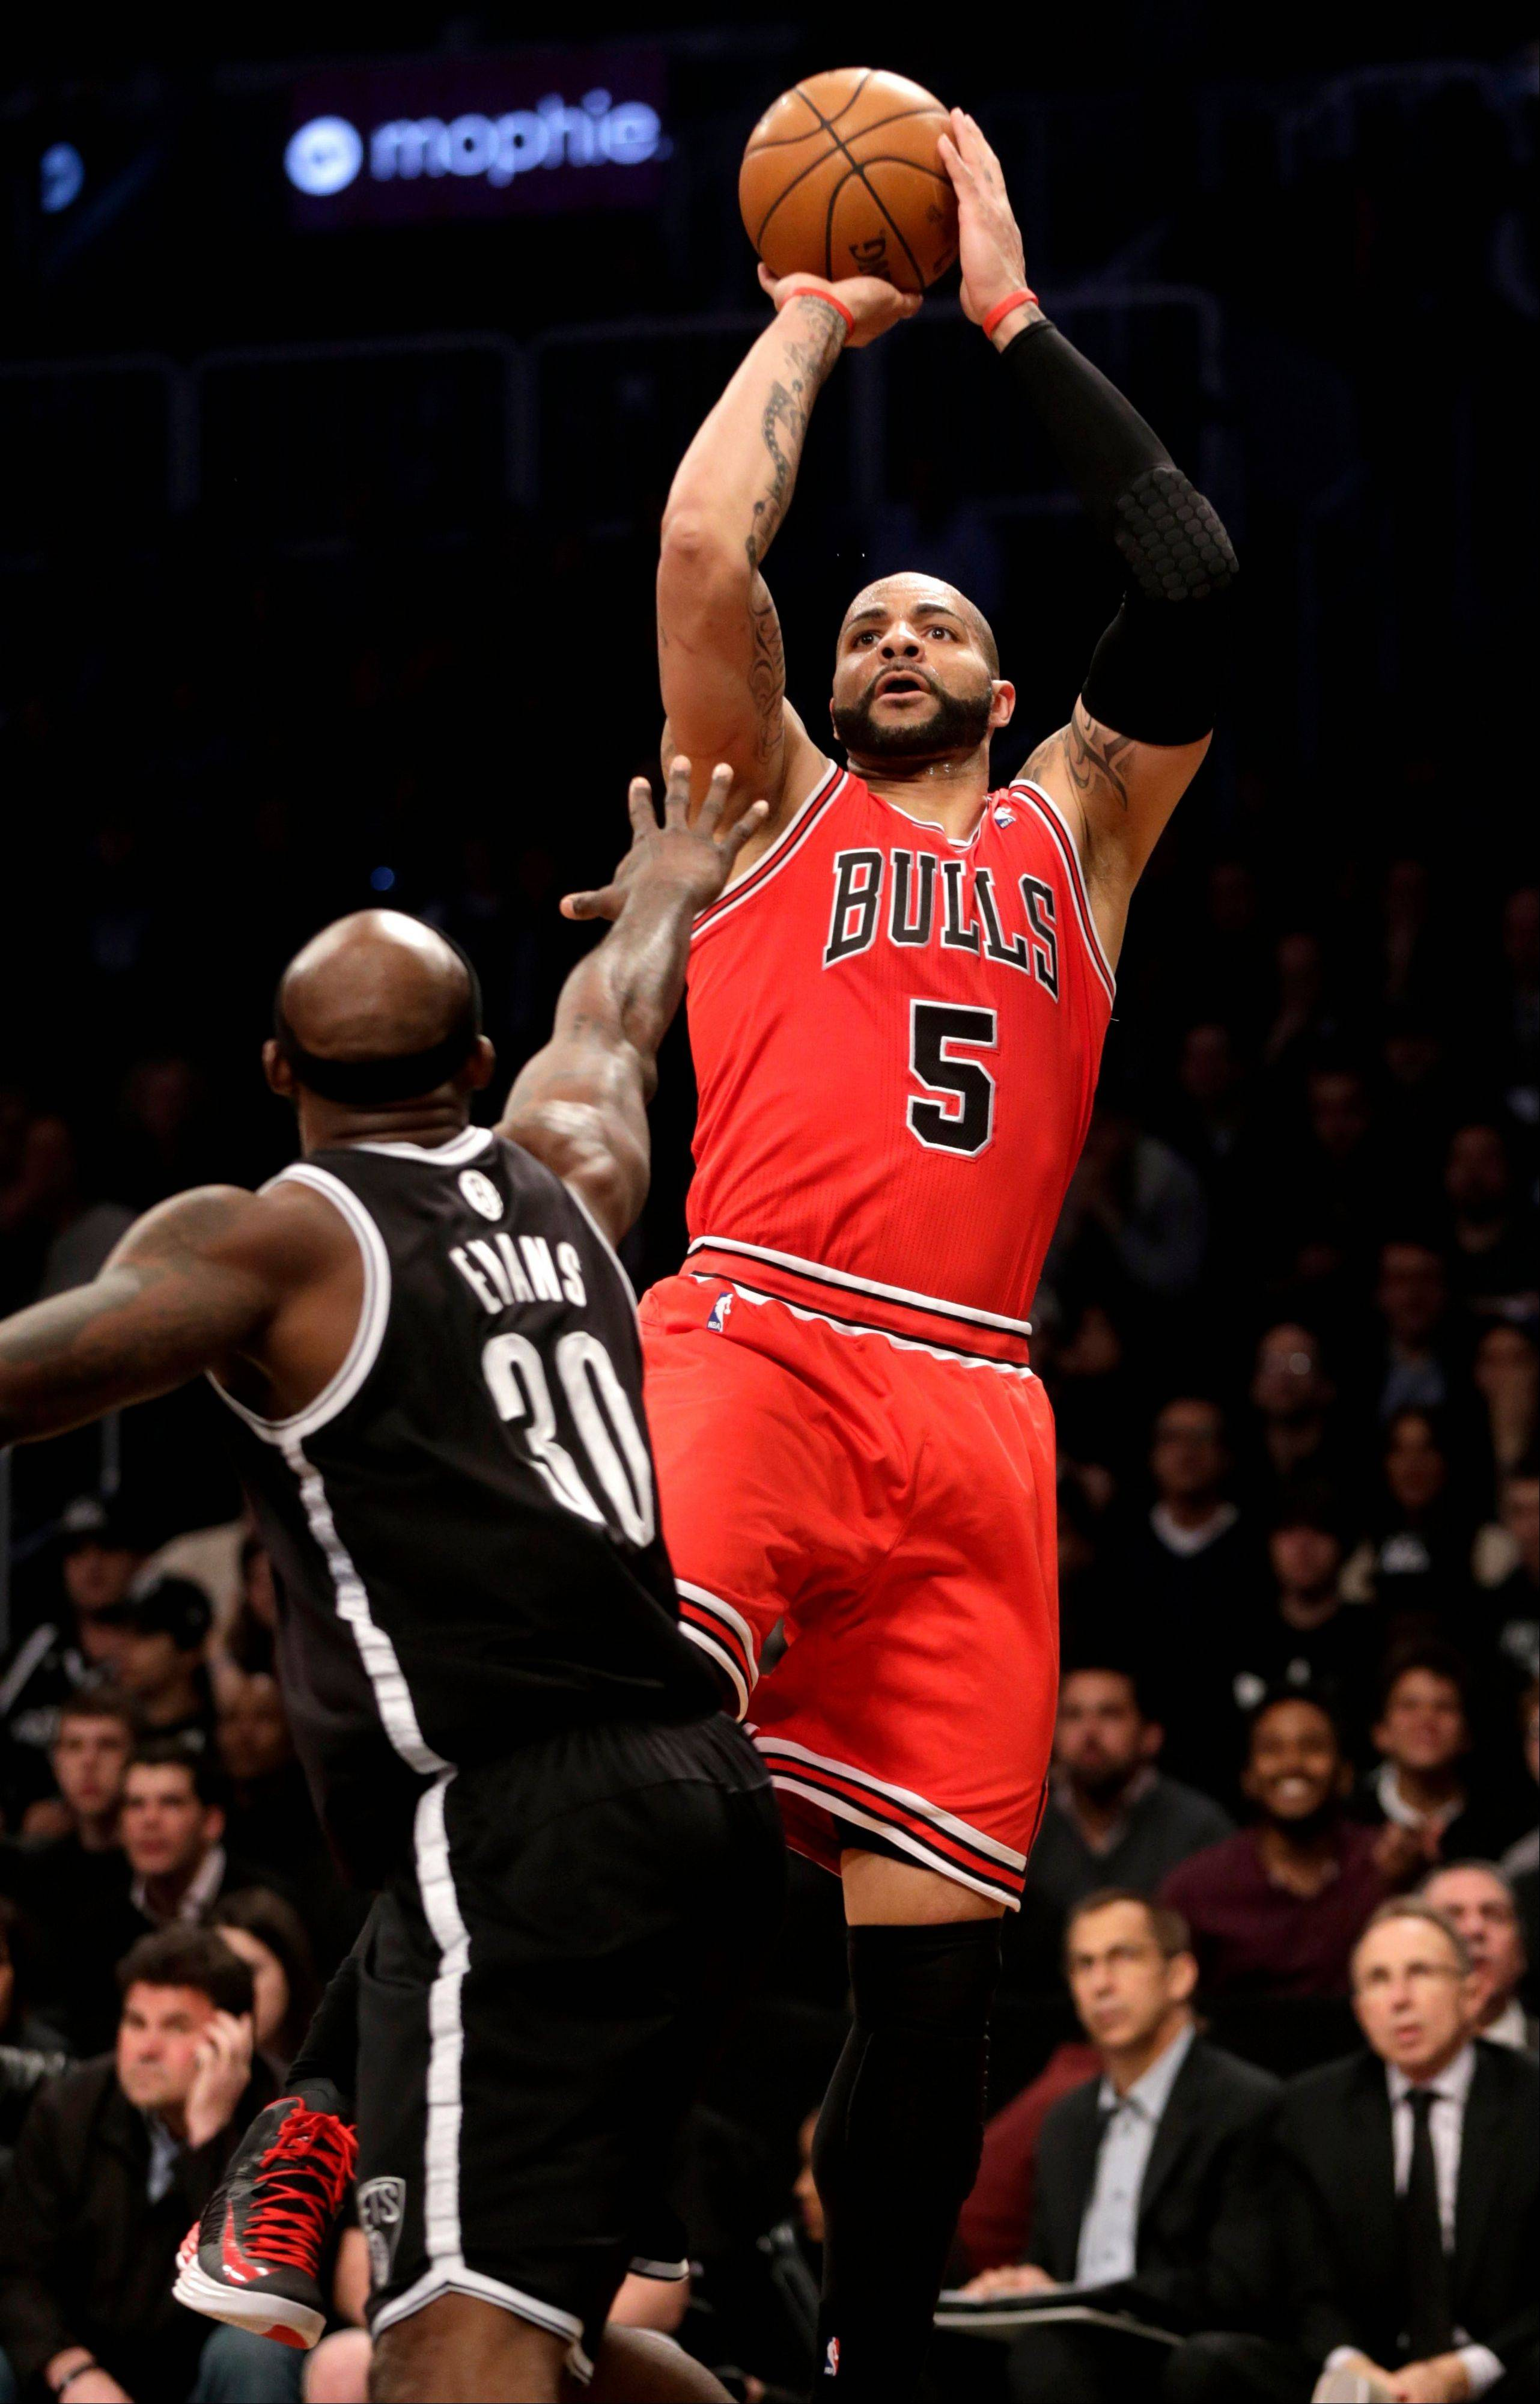 The Carlos Boozer, right, shoots over Brooklyn Nets' Reggie Evans during the first quarter of Game 1 of the first round of the playoffs, Saturday.